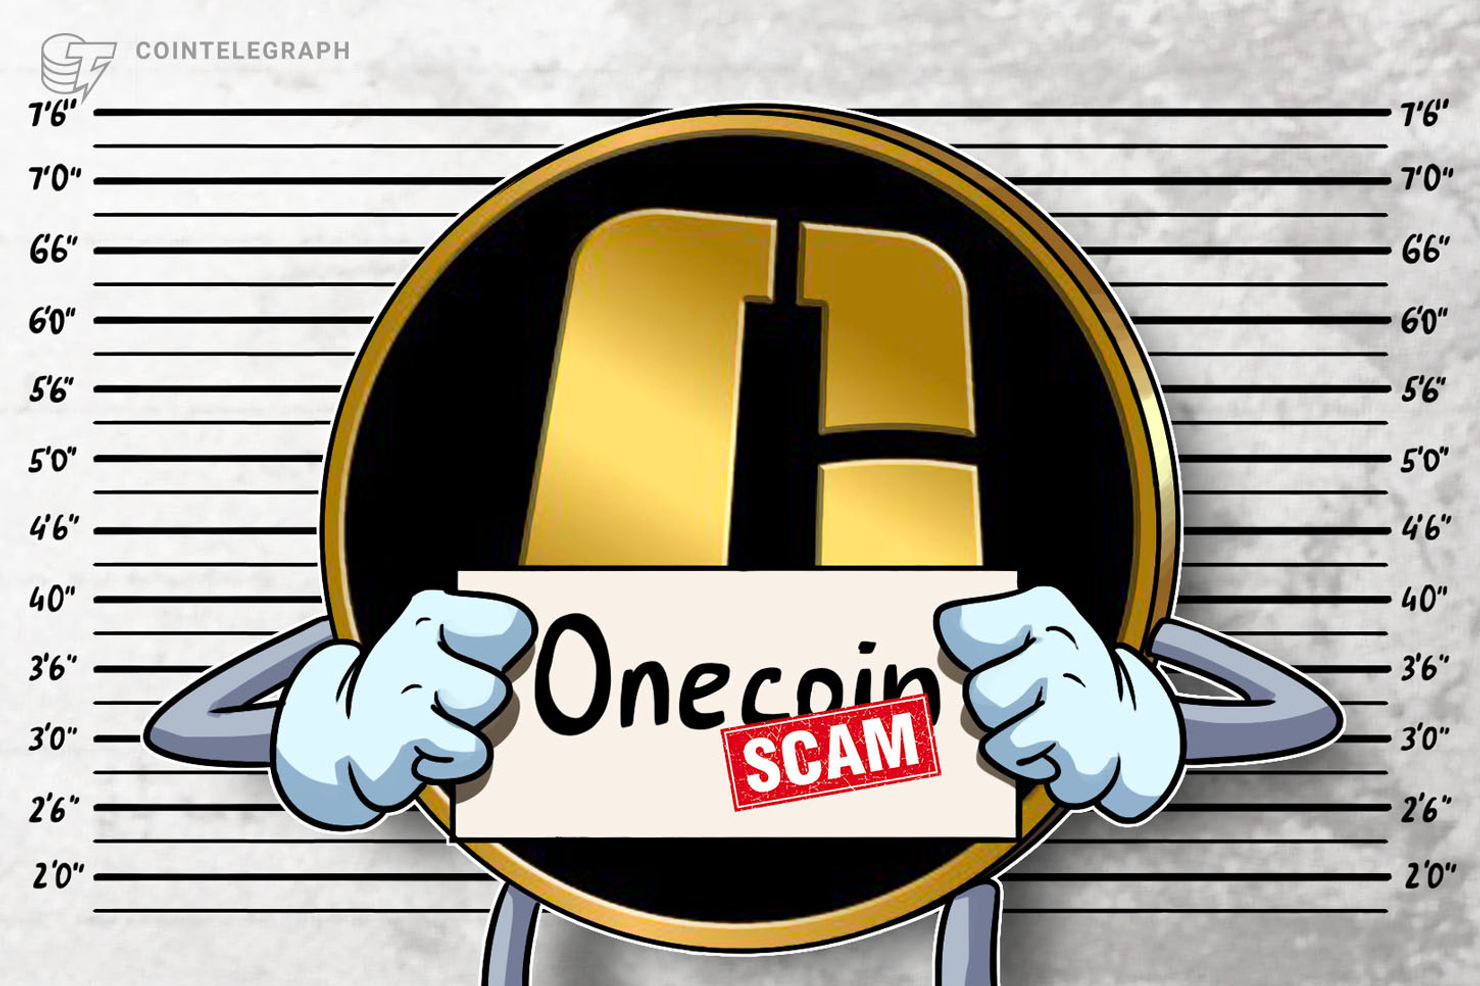 OneCoin Co-Founder Pleads Guilty, Faces up to 90 Years in Jail